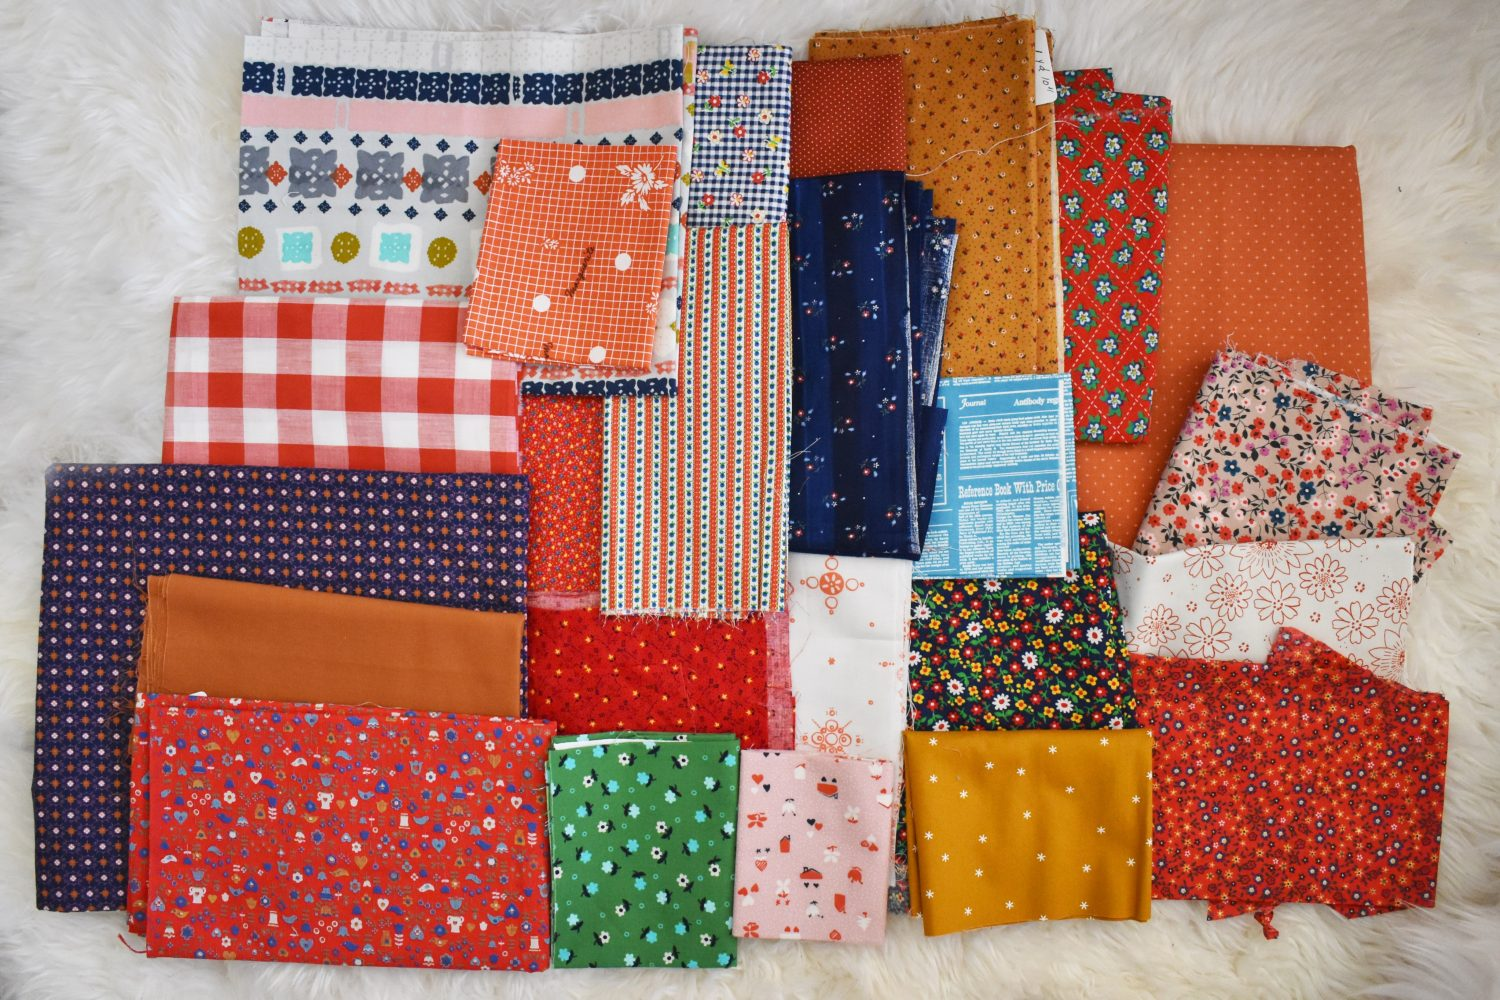 A 1970's inspired fabric pull with vintage fabrics and modern ones too